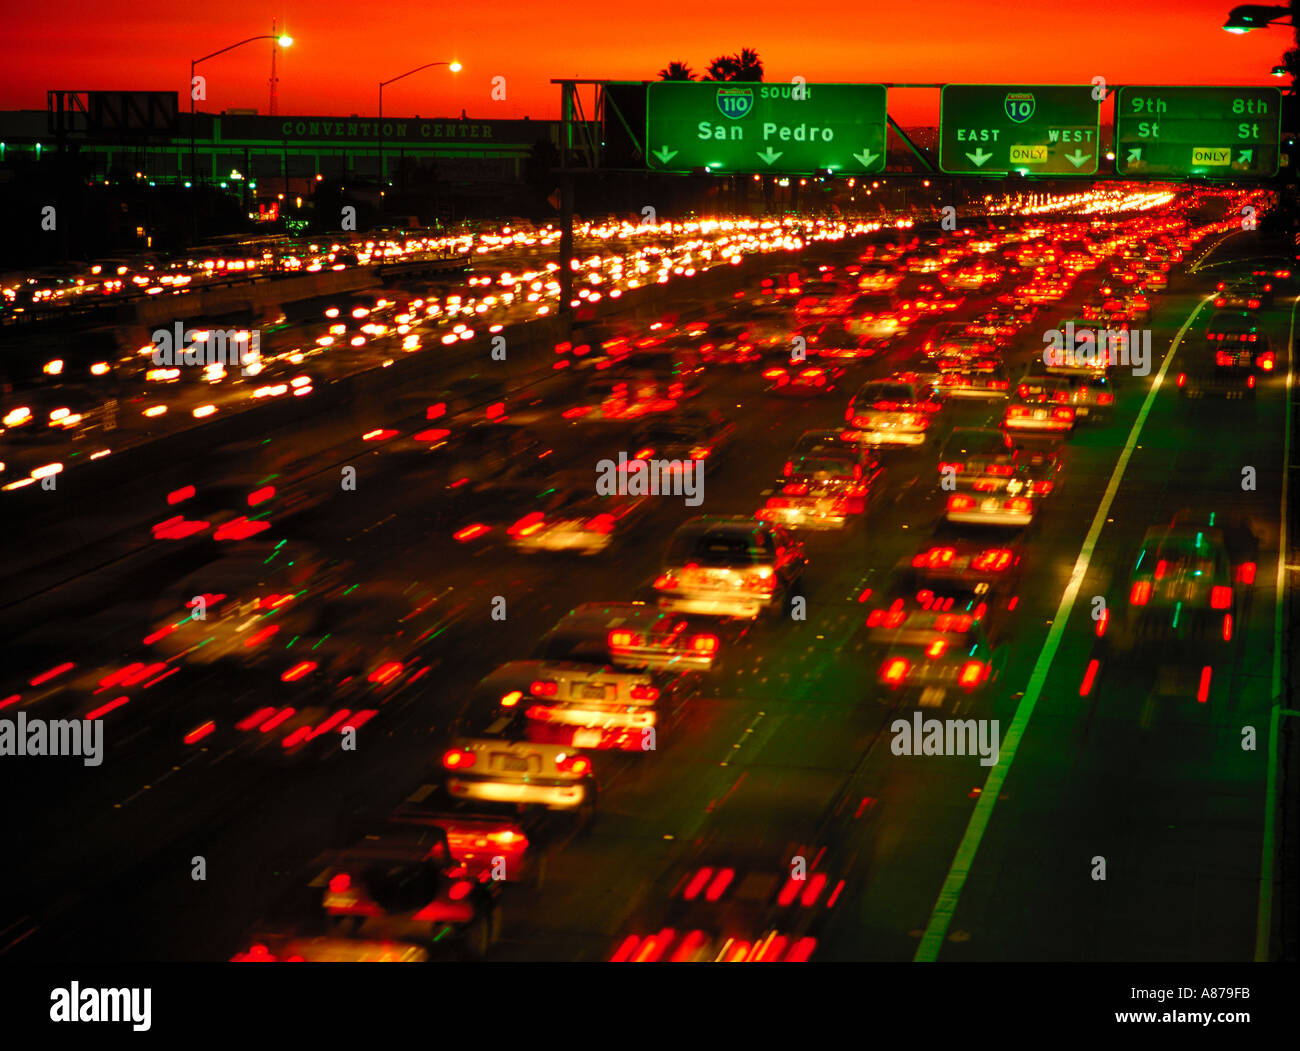 Blurred lights of traffic on a freeway at night Los Angeles California  sc 1 st  Alamy & Blurred lights of traffic on a freeway at night Los Angeles Stock ...